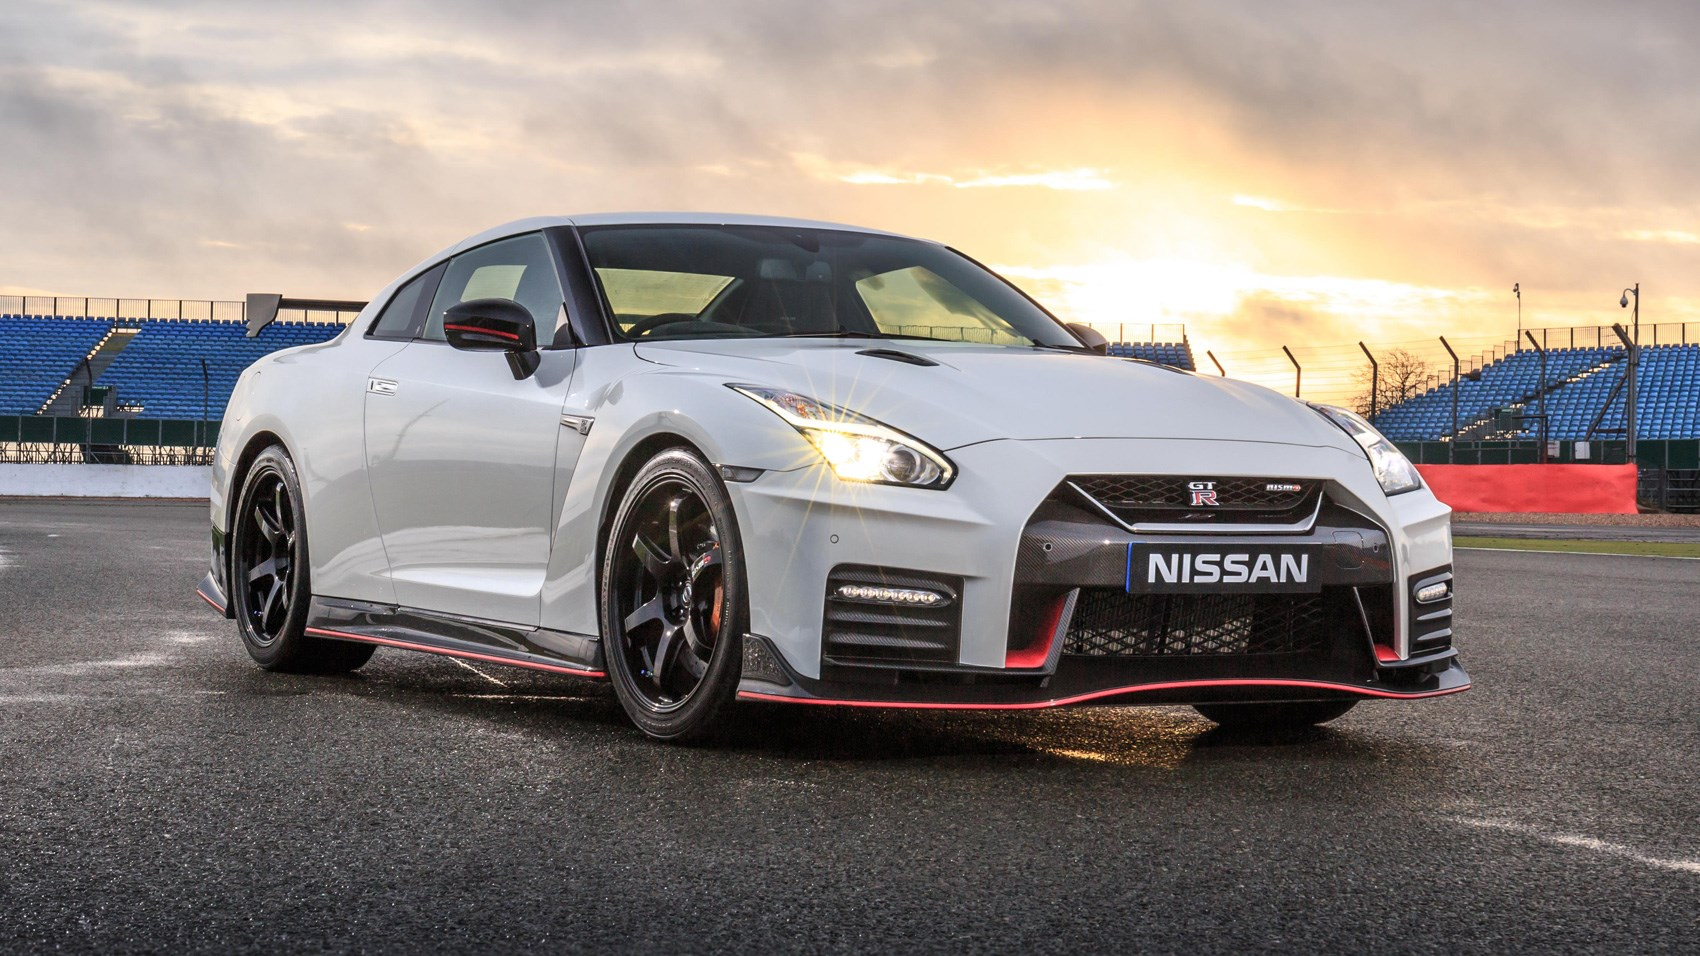 2017 Nissan Gt R Nismo Vs 660hp Tuned